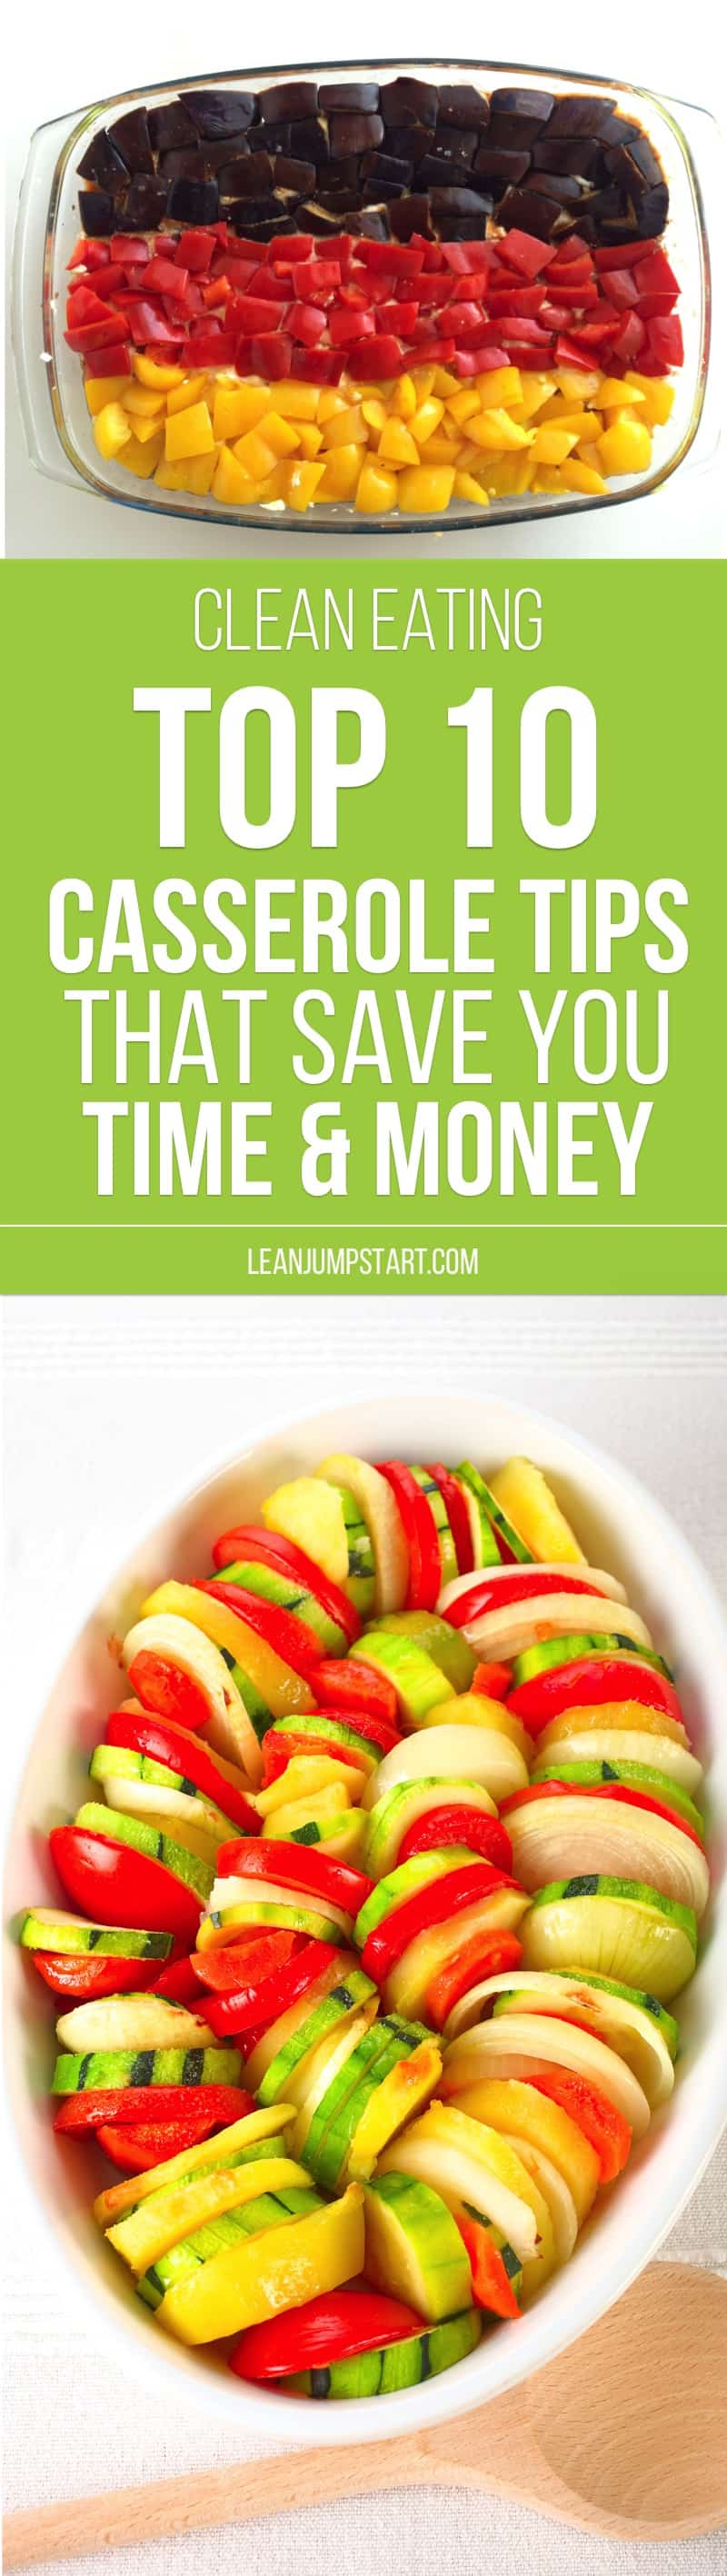 Top 10 casserole tips that save you time and money and why healthy casserole recipes are so important in the clean eating kitchen